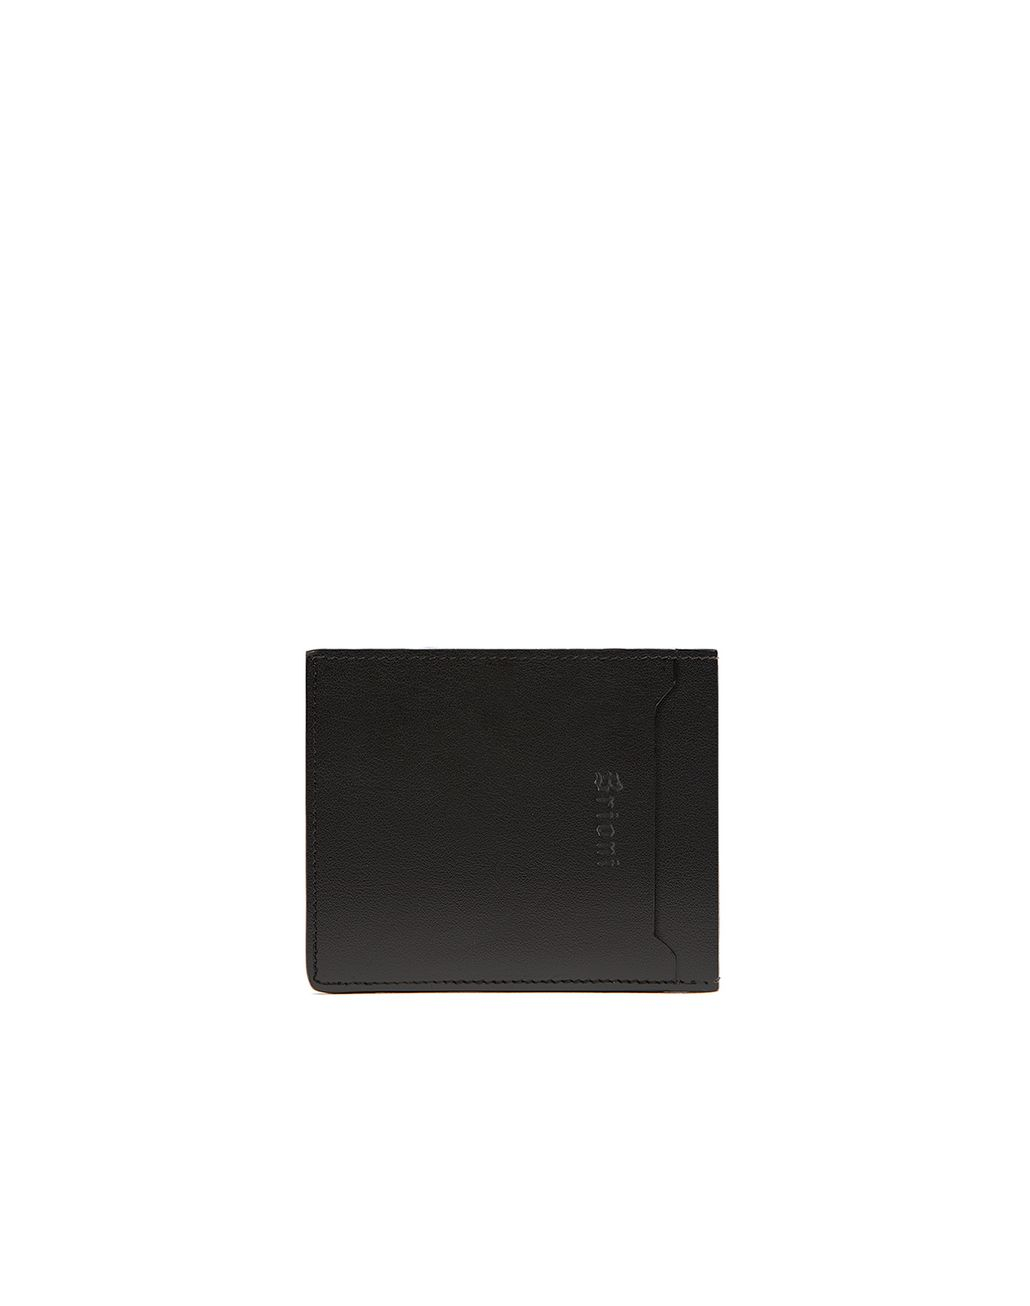 BRIONI Black Slim Wallet Leather Goods Man d